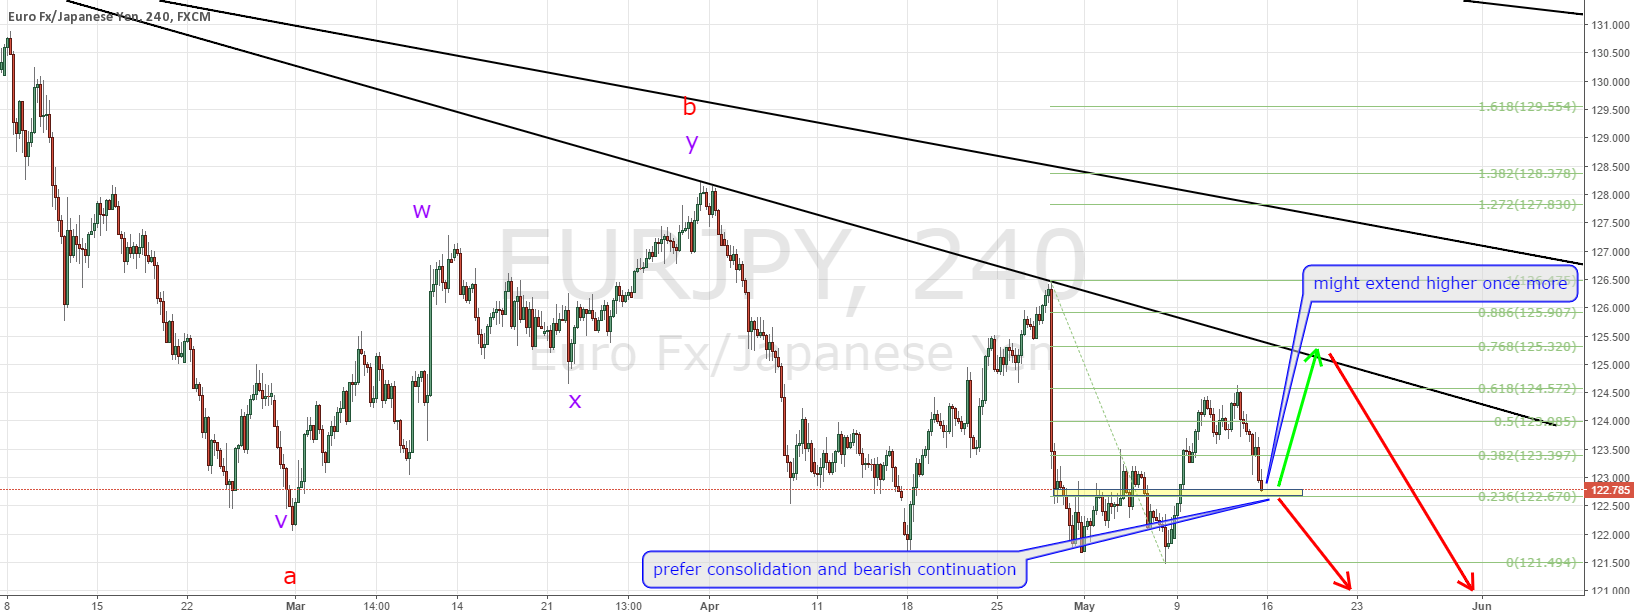 EURJPY according to plan, follow up and bigger picture!